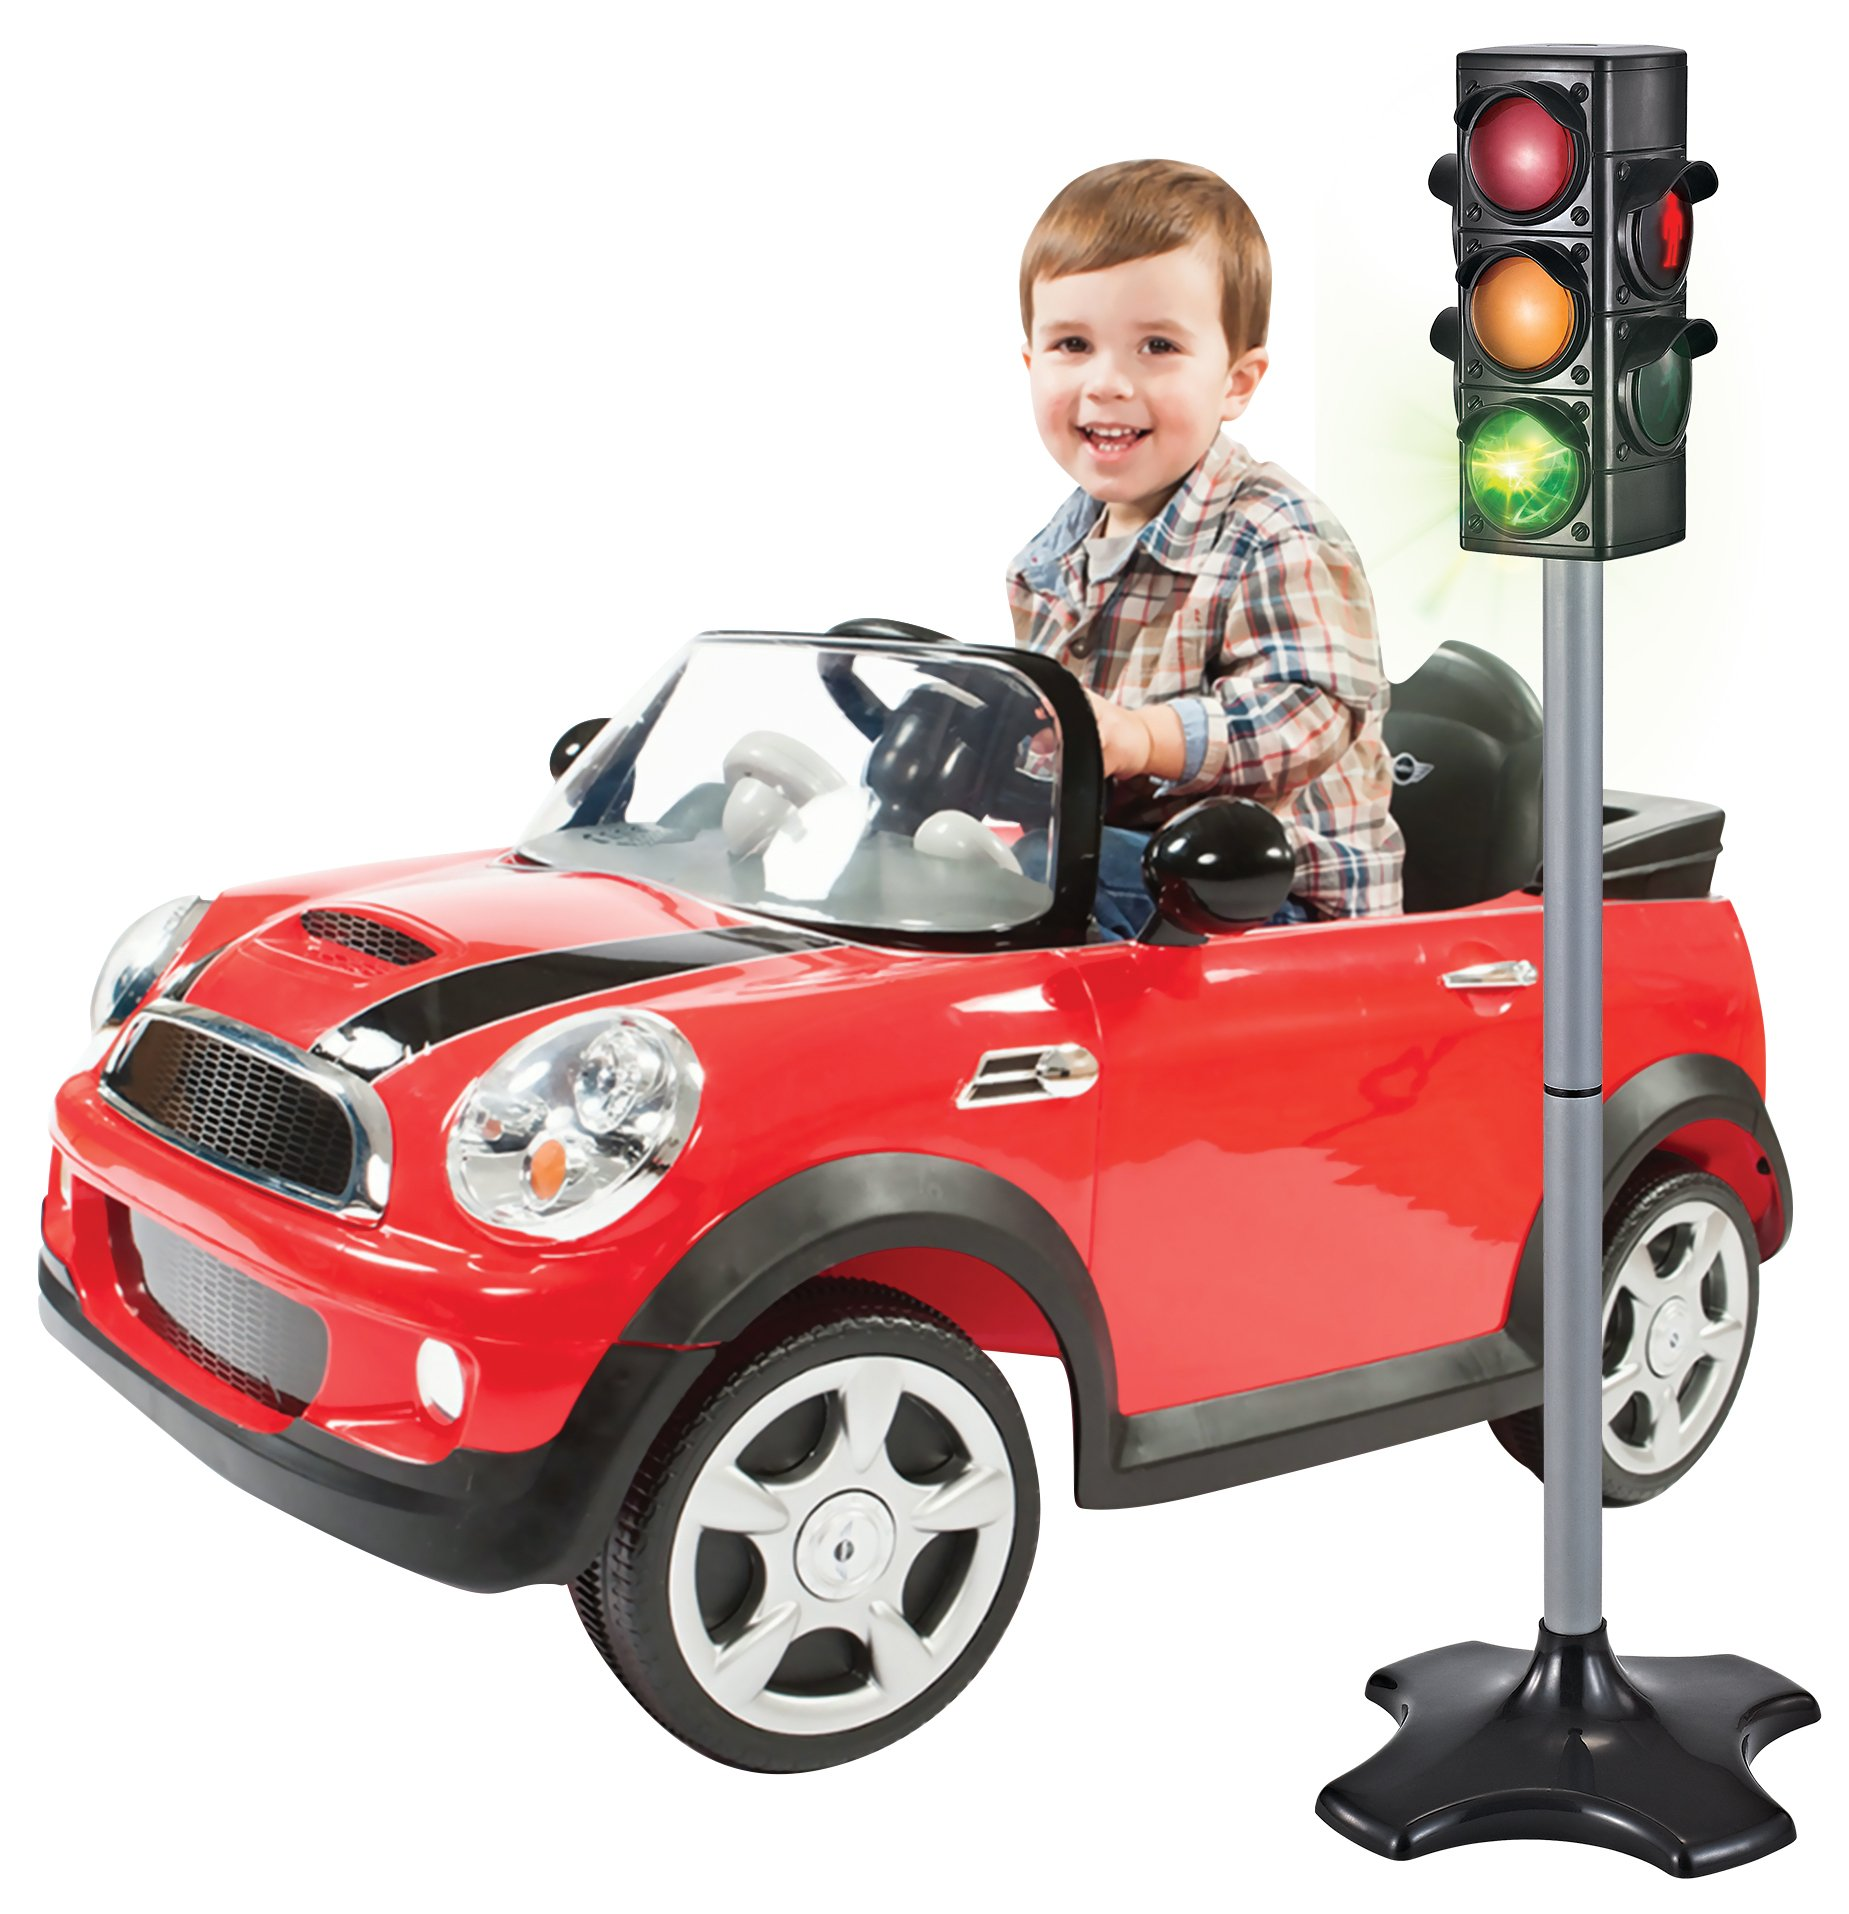 MMP Living Toy Traffic & Crosswalk Signal with Light & Sound - 4 Sided, Over 2 feet Tall by MMP Living (Image #2)